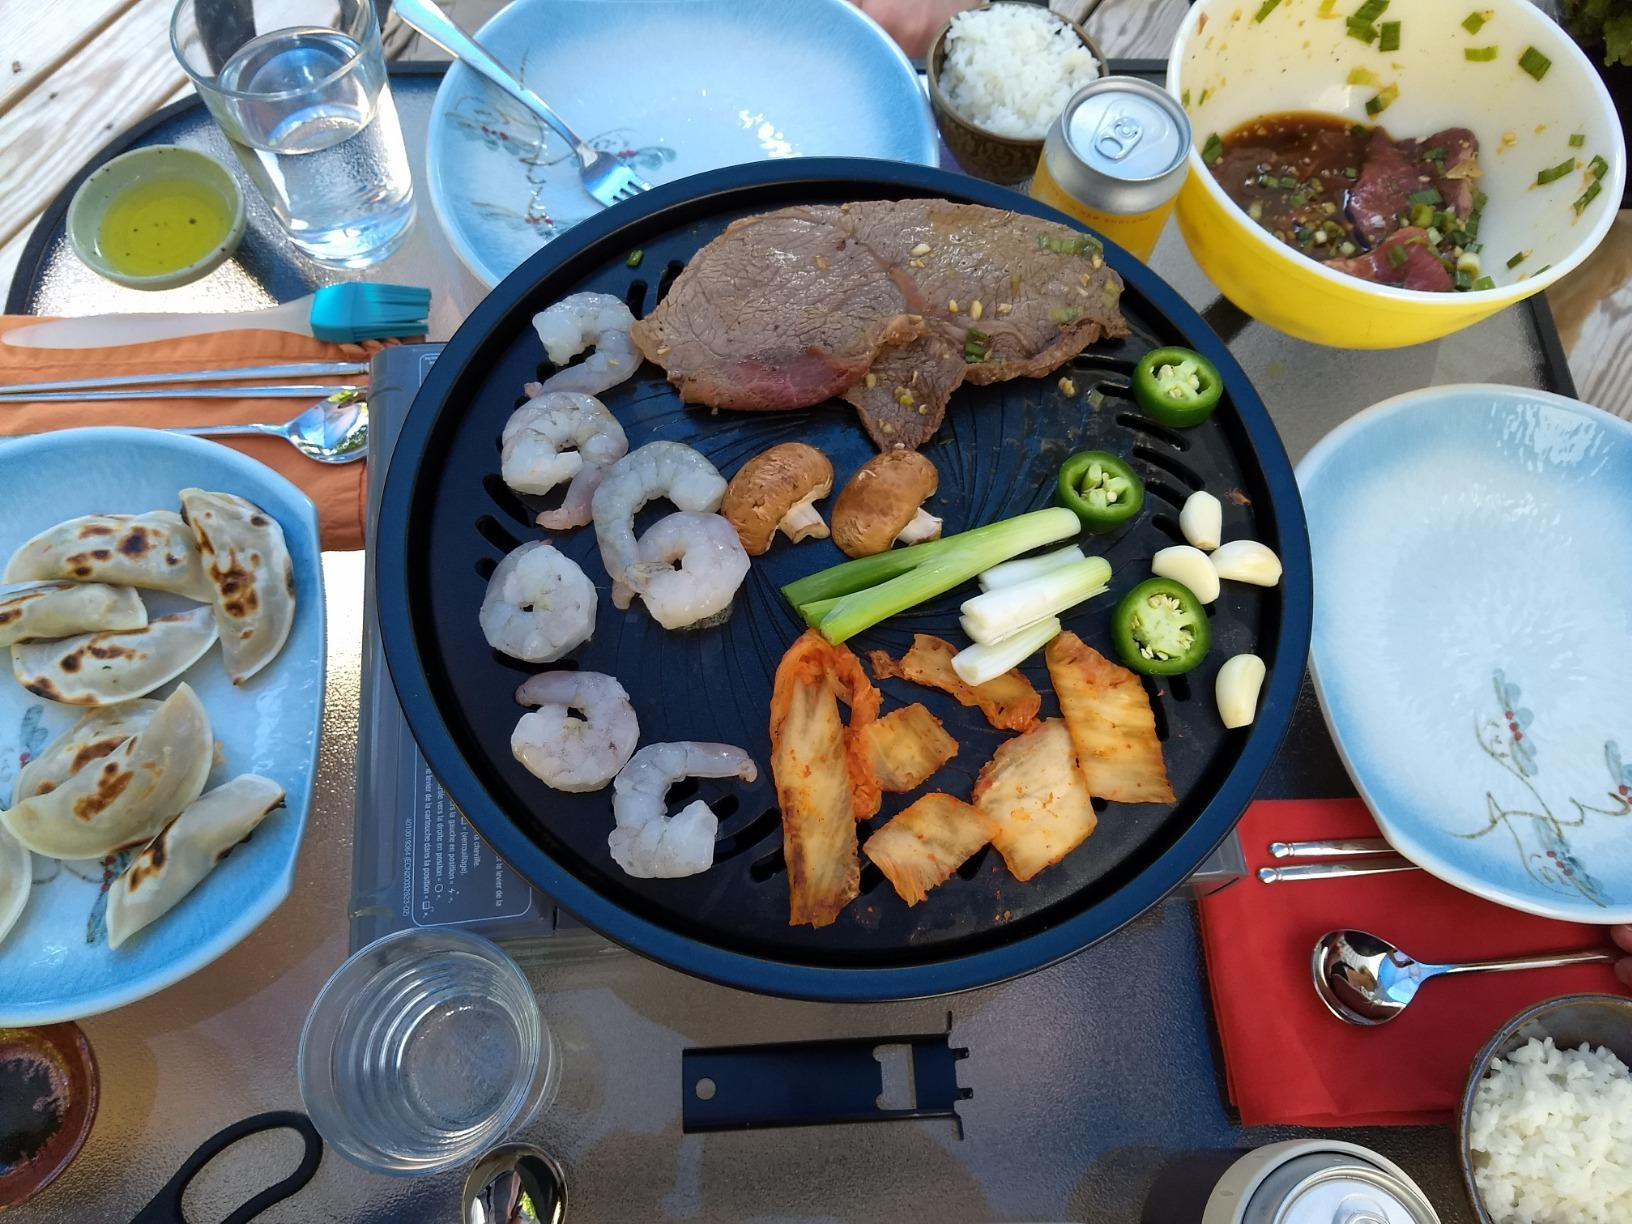 Portable Korean Outdoor Barbecue Gas Grill Pan Camping Gas Stove Plate BBQ Roasting Cooking Tool Sets photo review